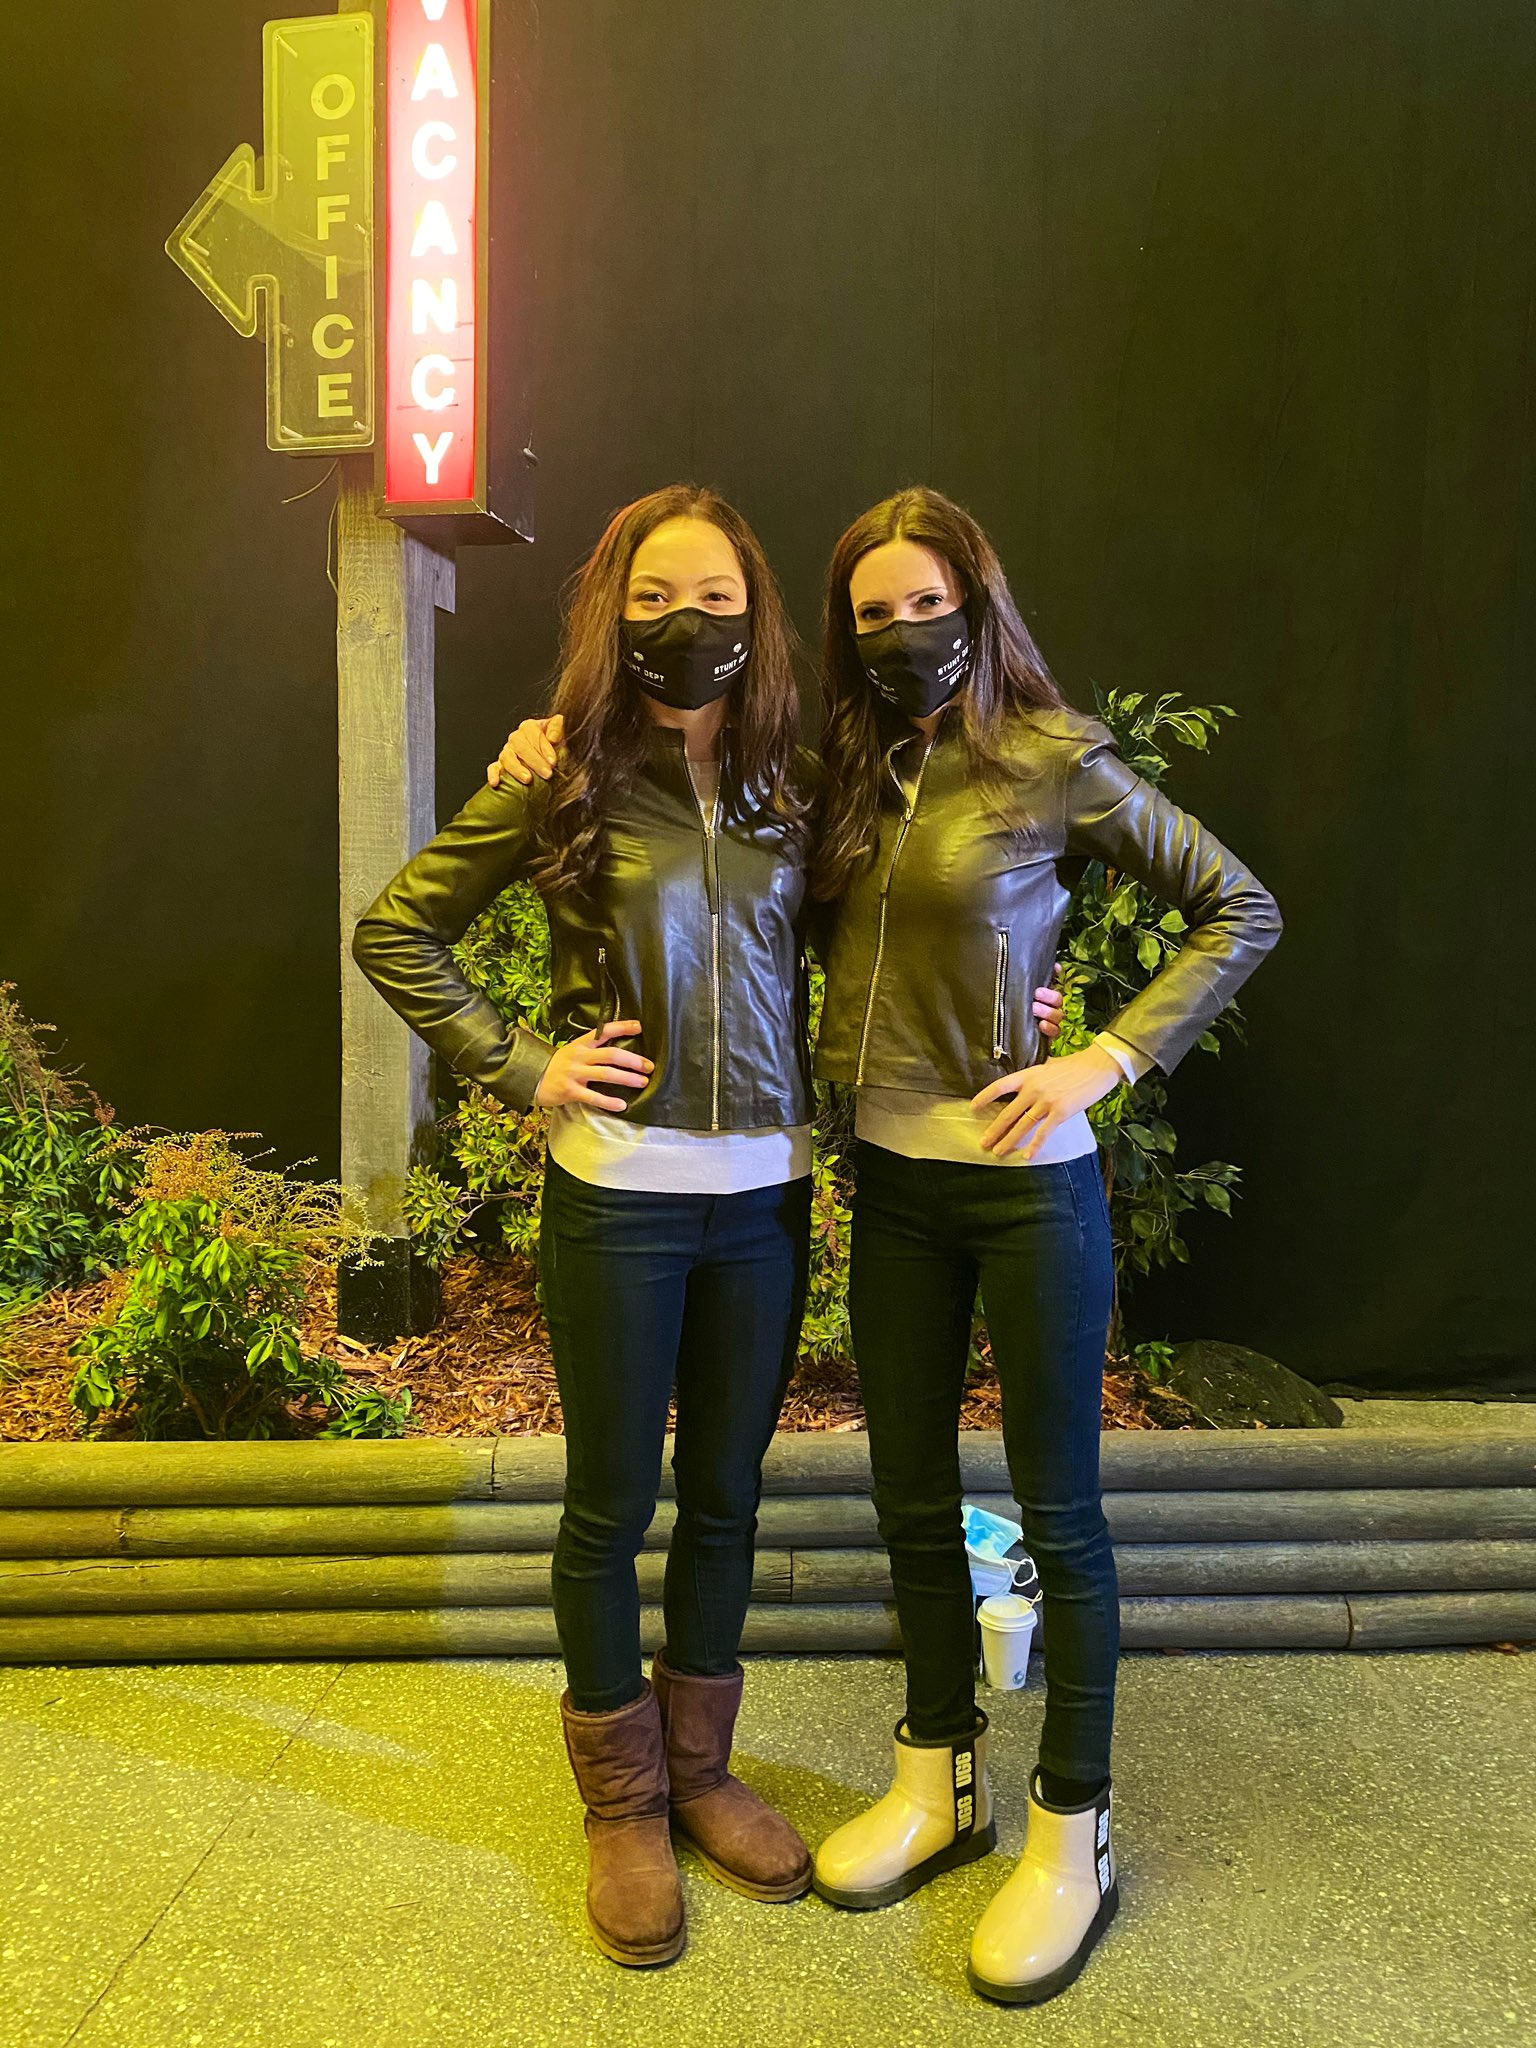 Bitsie Tulloch Poses with Lois Lane Stunt Double